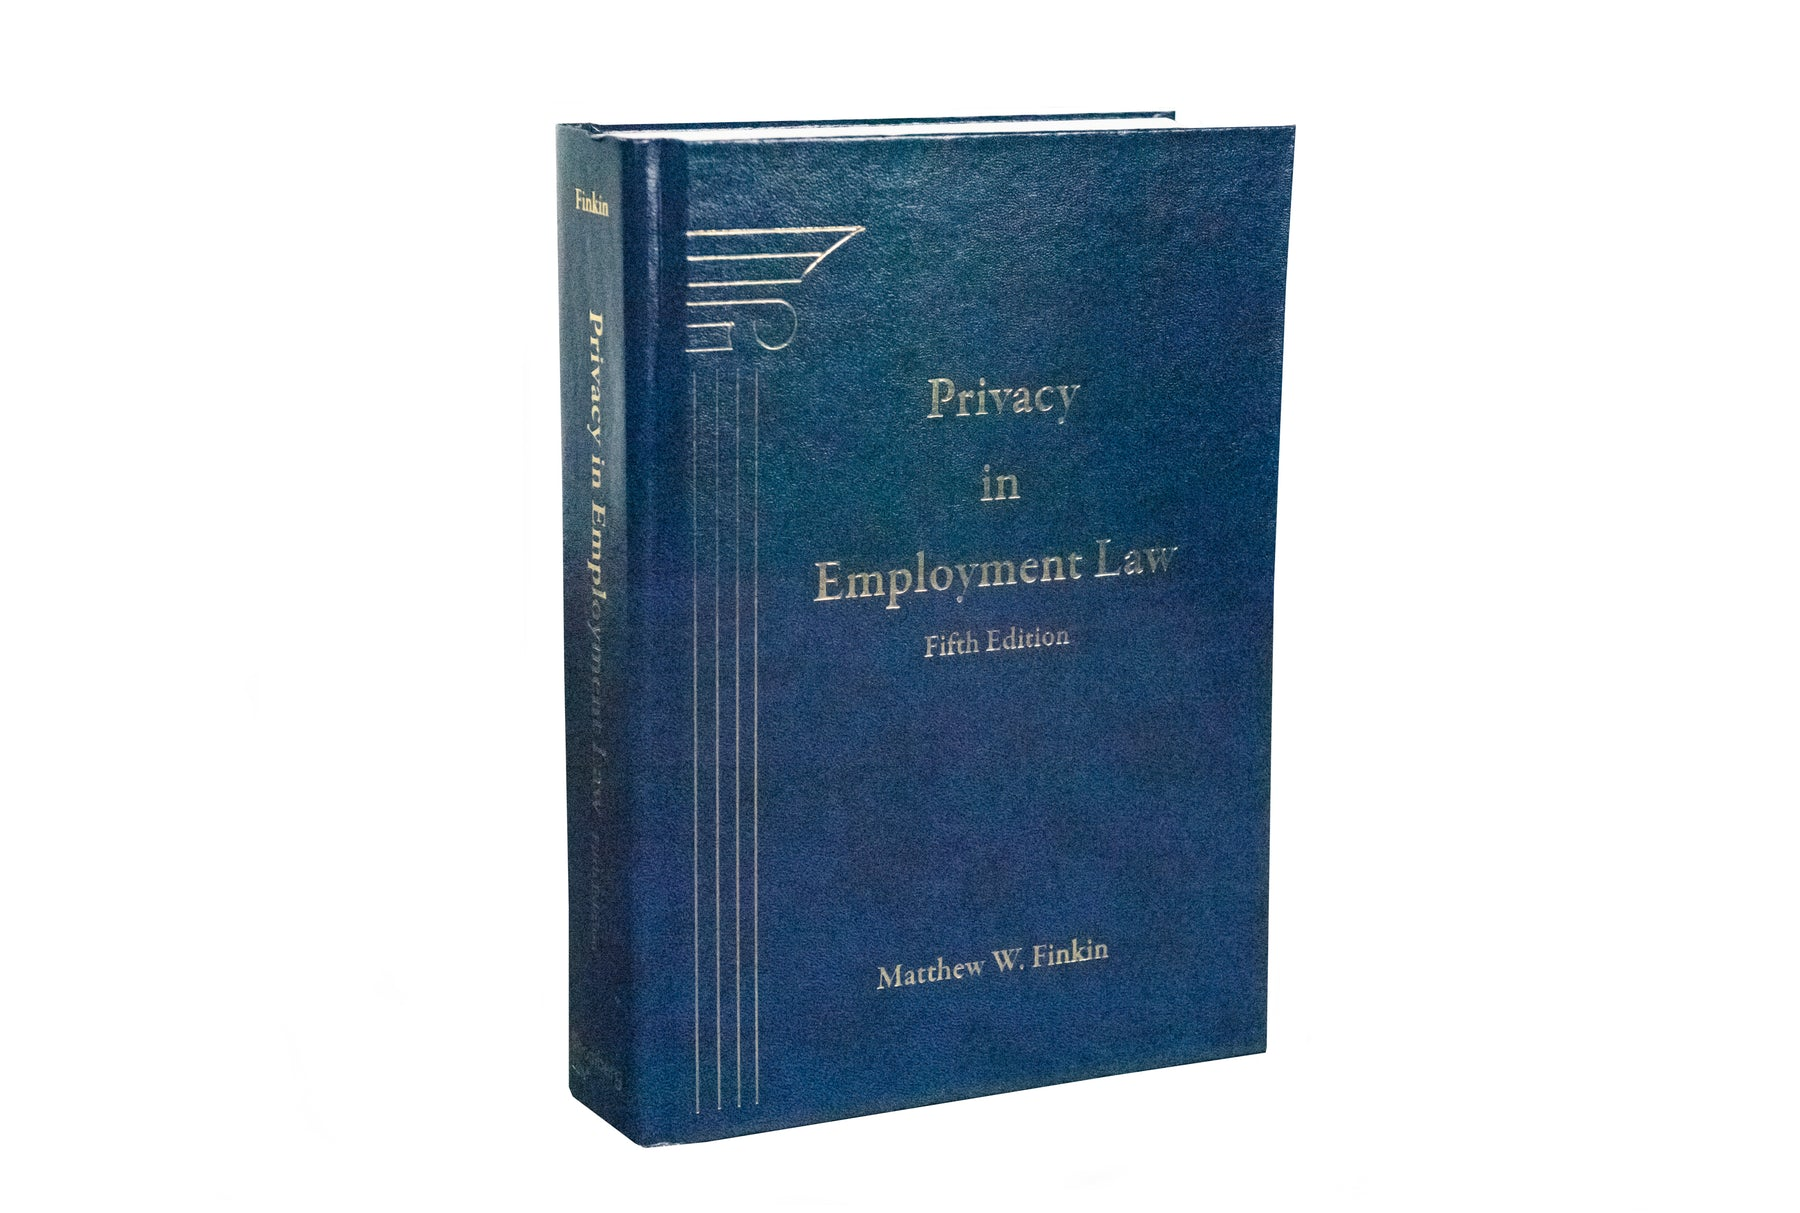 Privacy in Employment Law, Fifth Edition